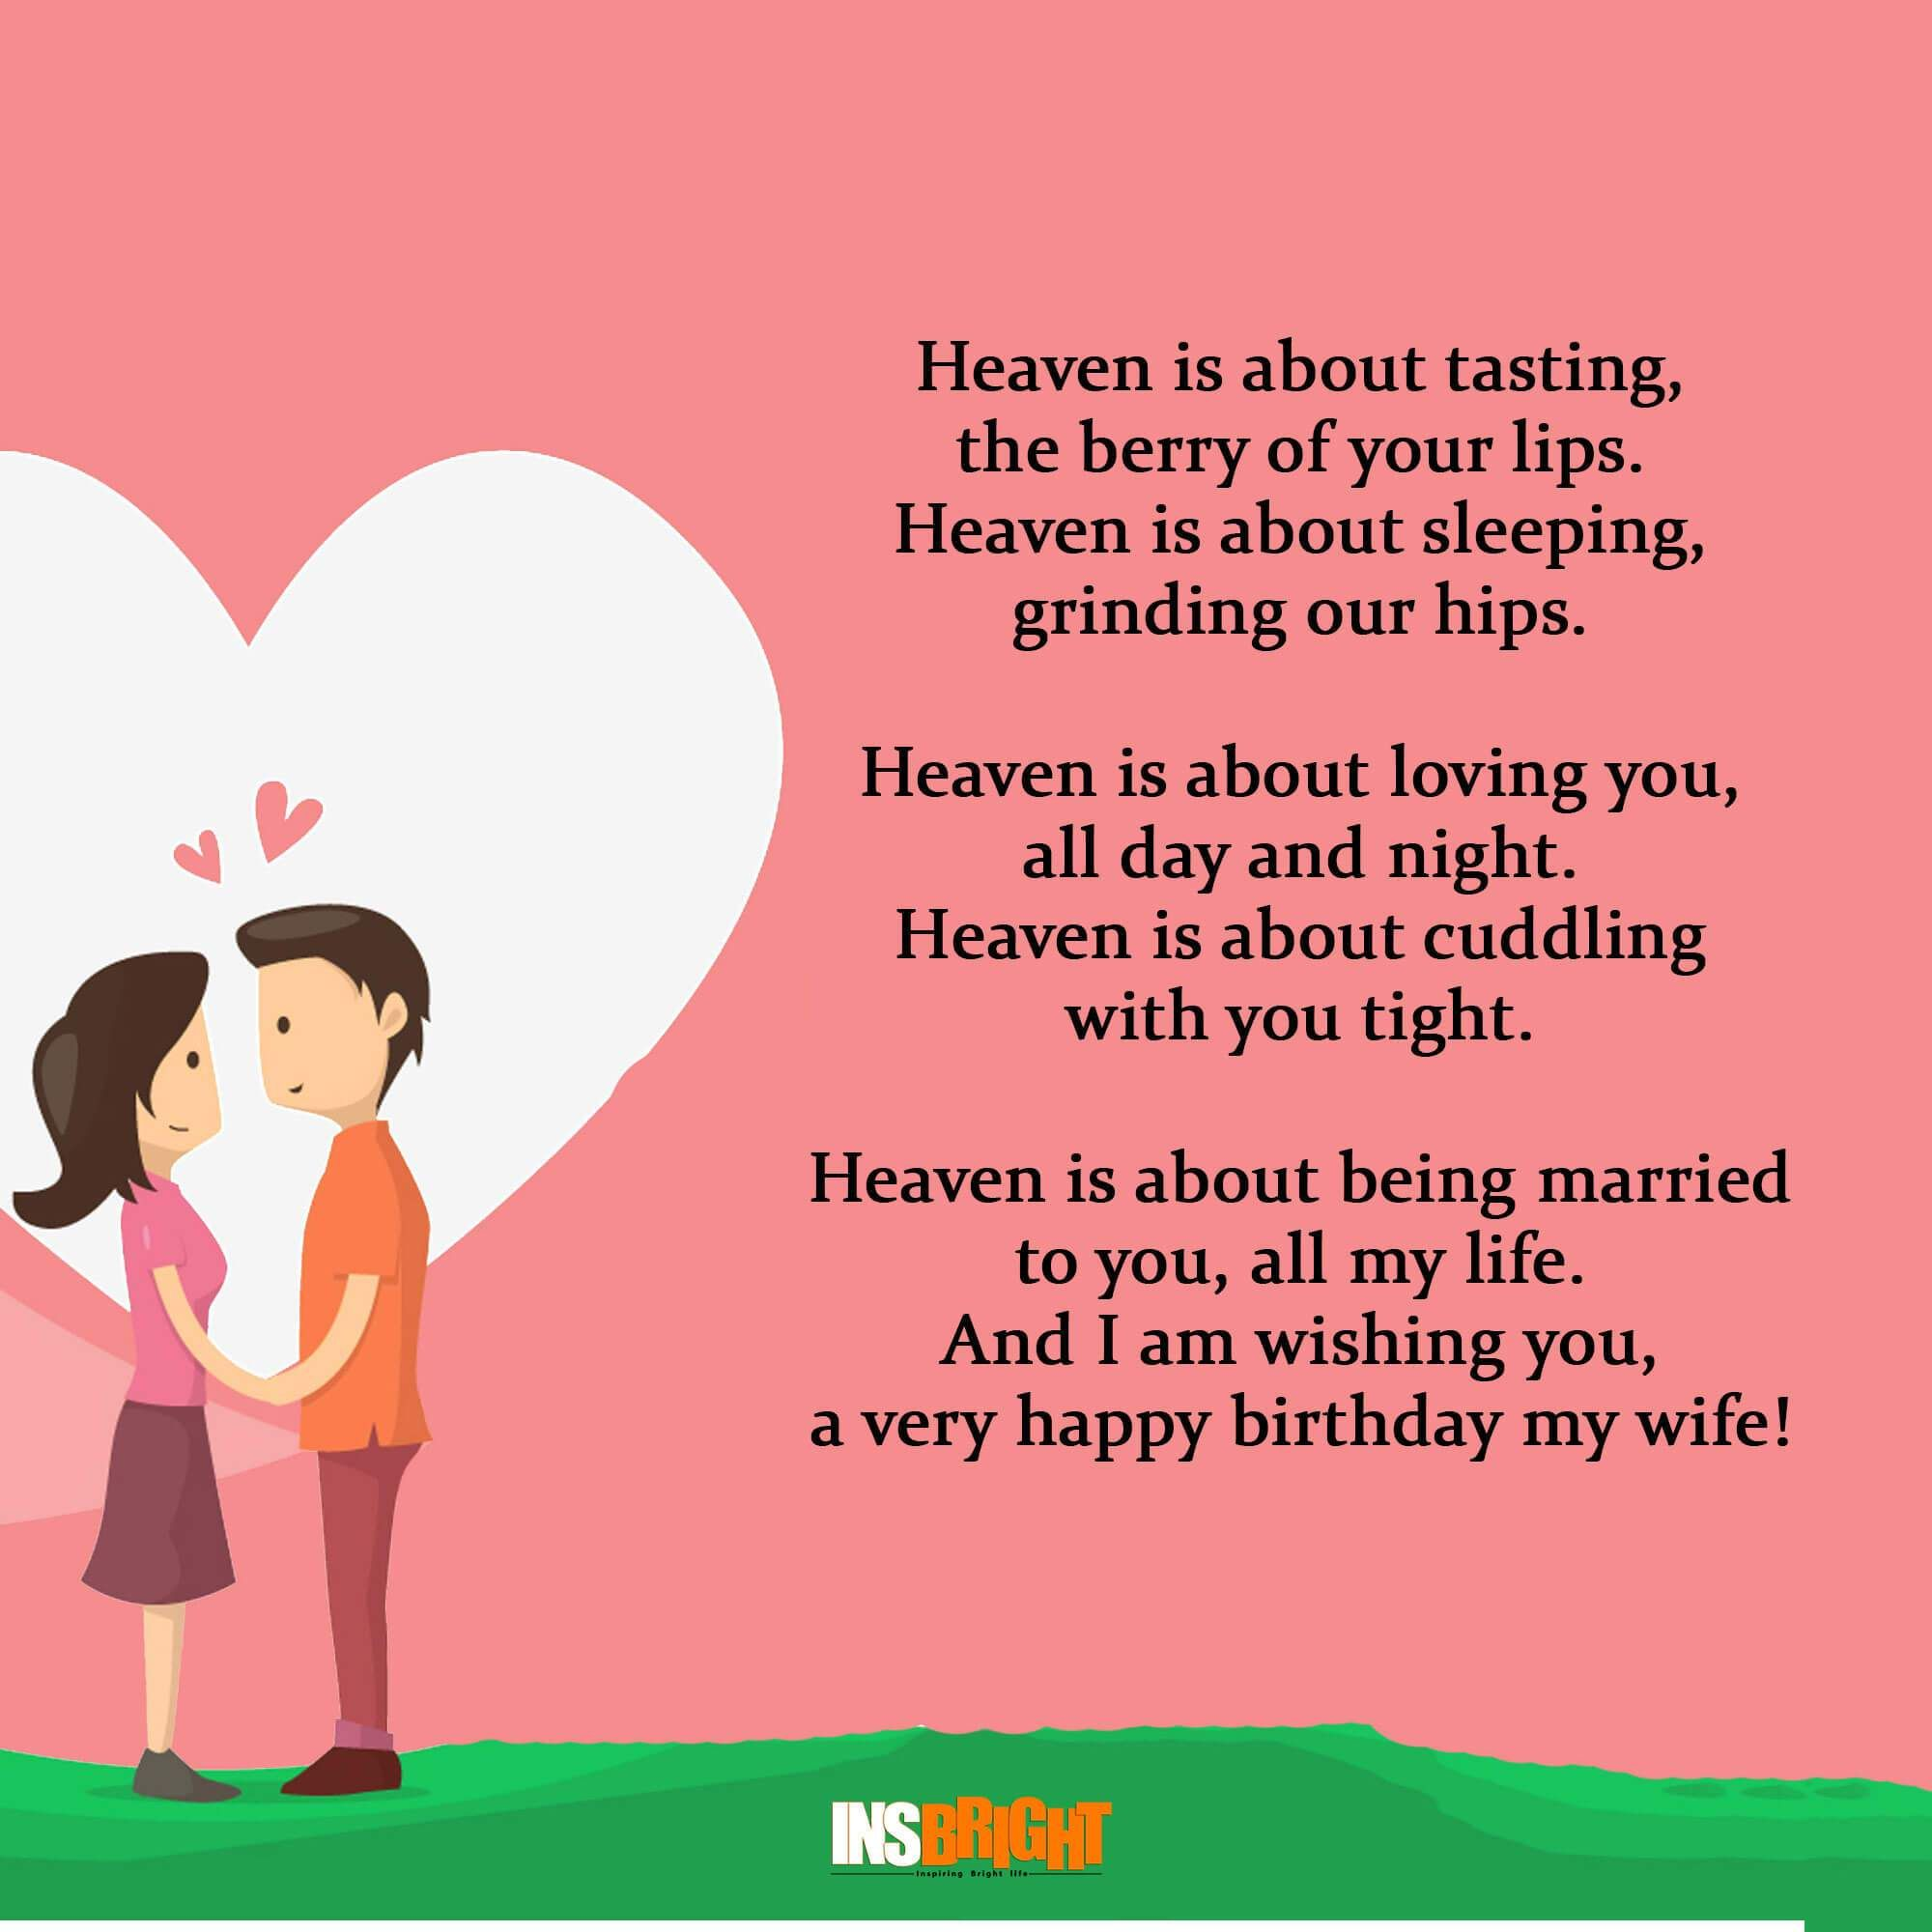 Wedding Anniversary In Heaven Poems Birthday wishes for